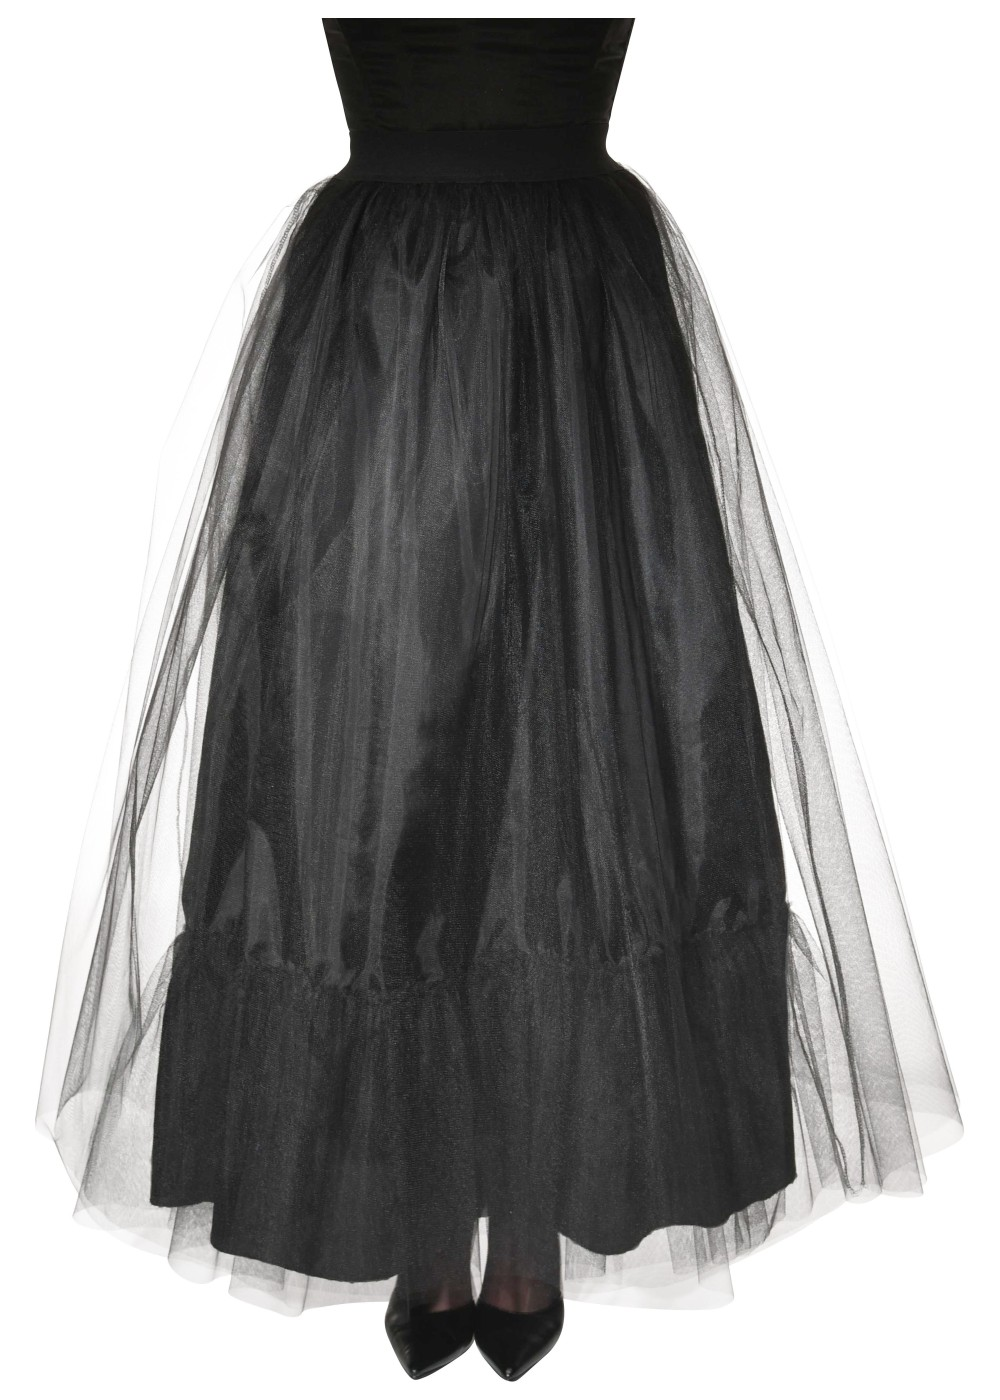 Black Witch Women Skirt - Witch Costumes